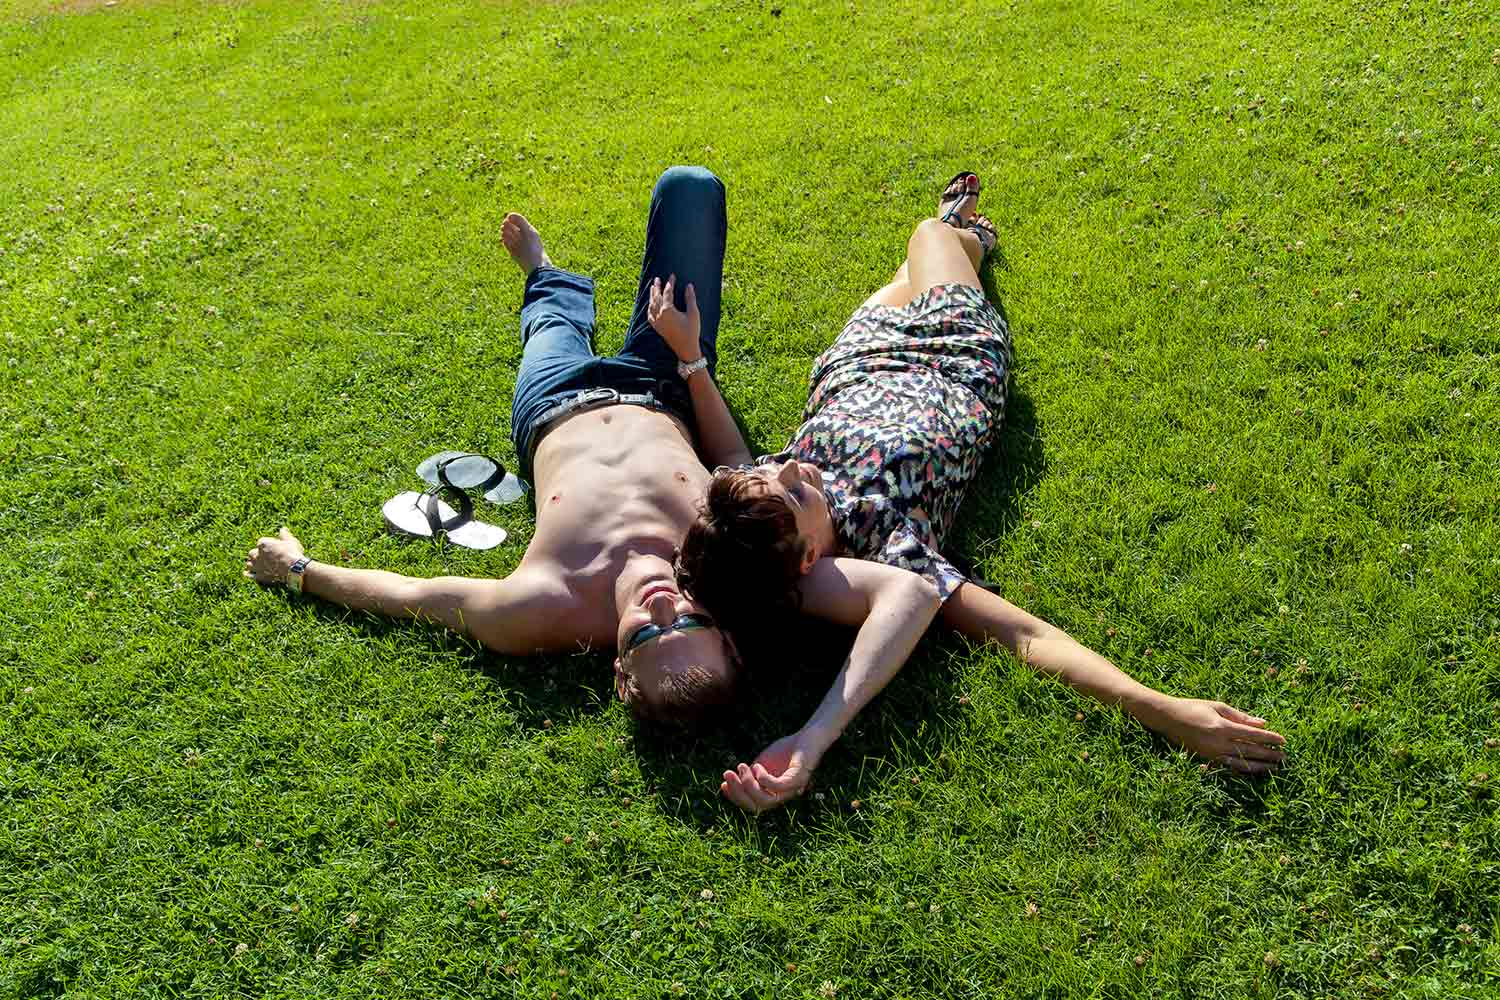 Laid back couple relaxing on green grass.